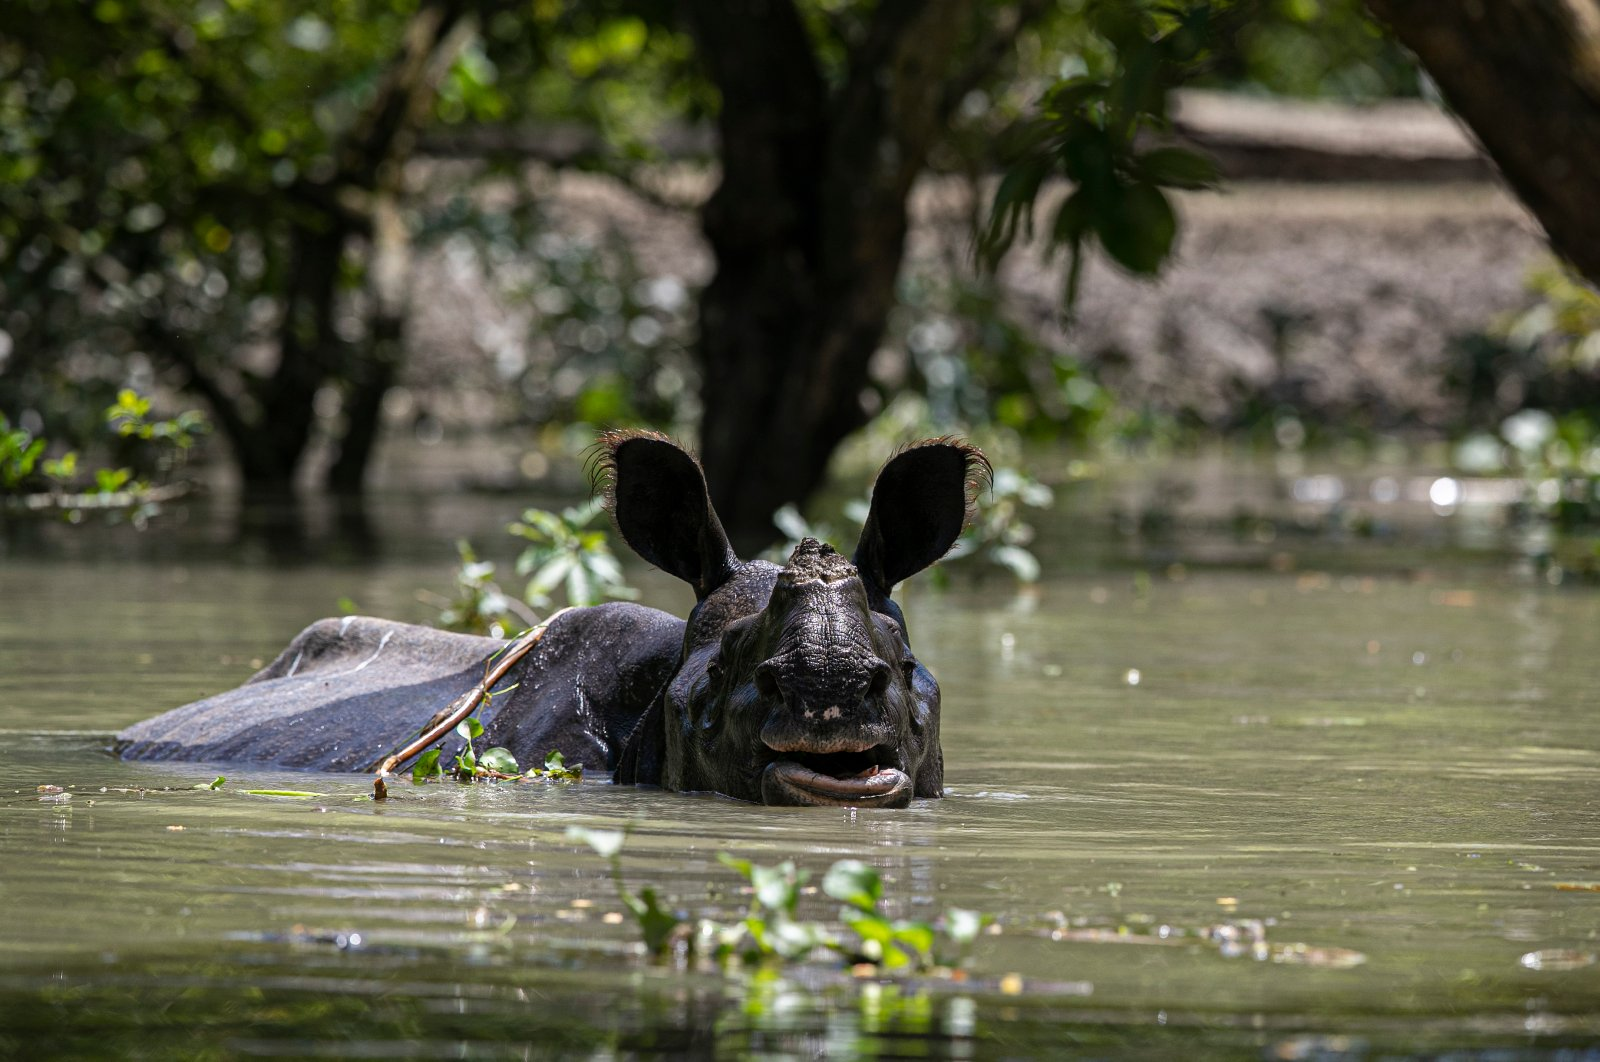 A one-horned rhinoceros wades through floodwater at the Pobitora wildlife sanctuary in Pobitora, Morigaon district, Assam, India, July 16, 2020. (AP Photo)